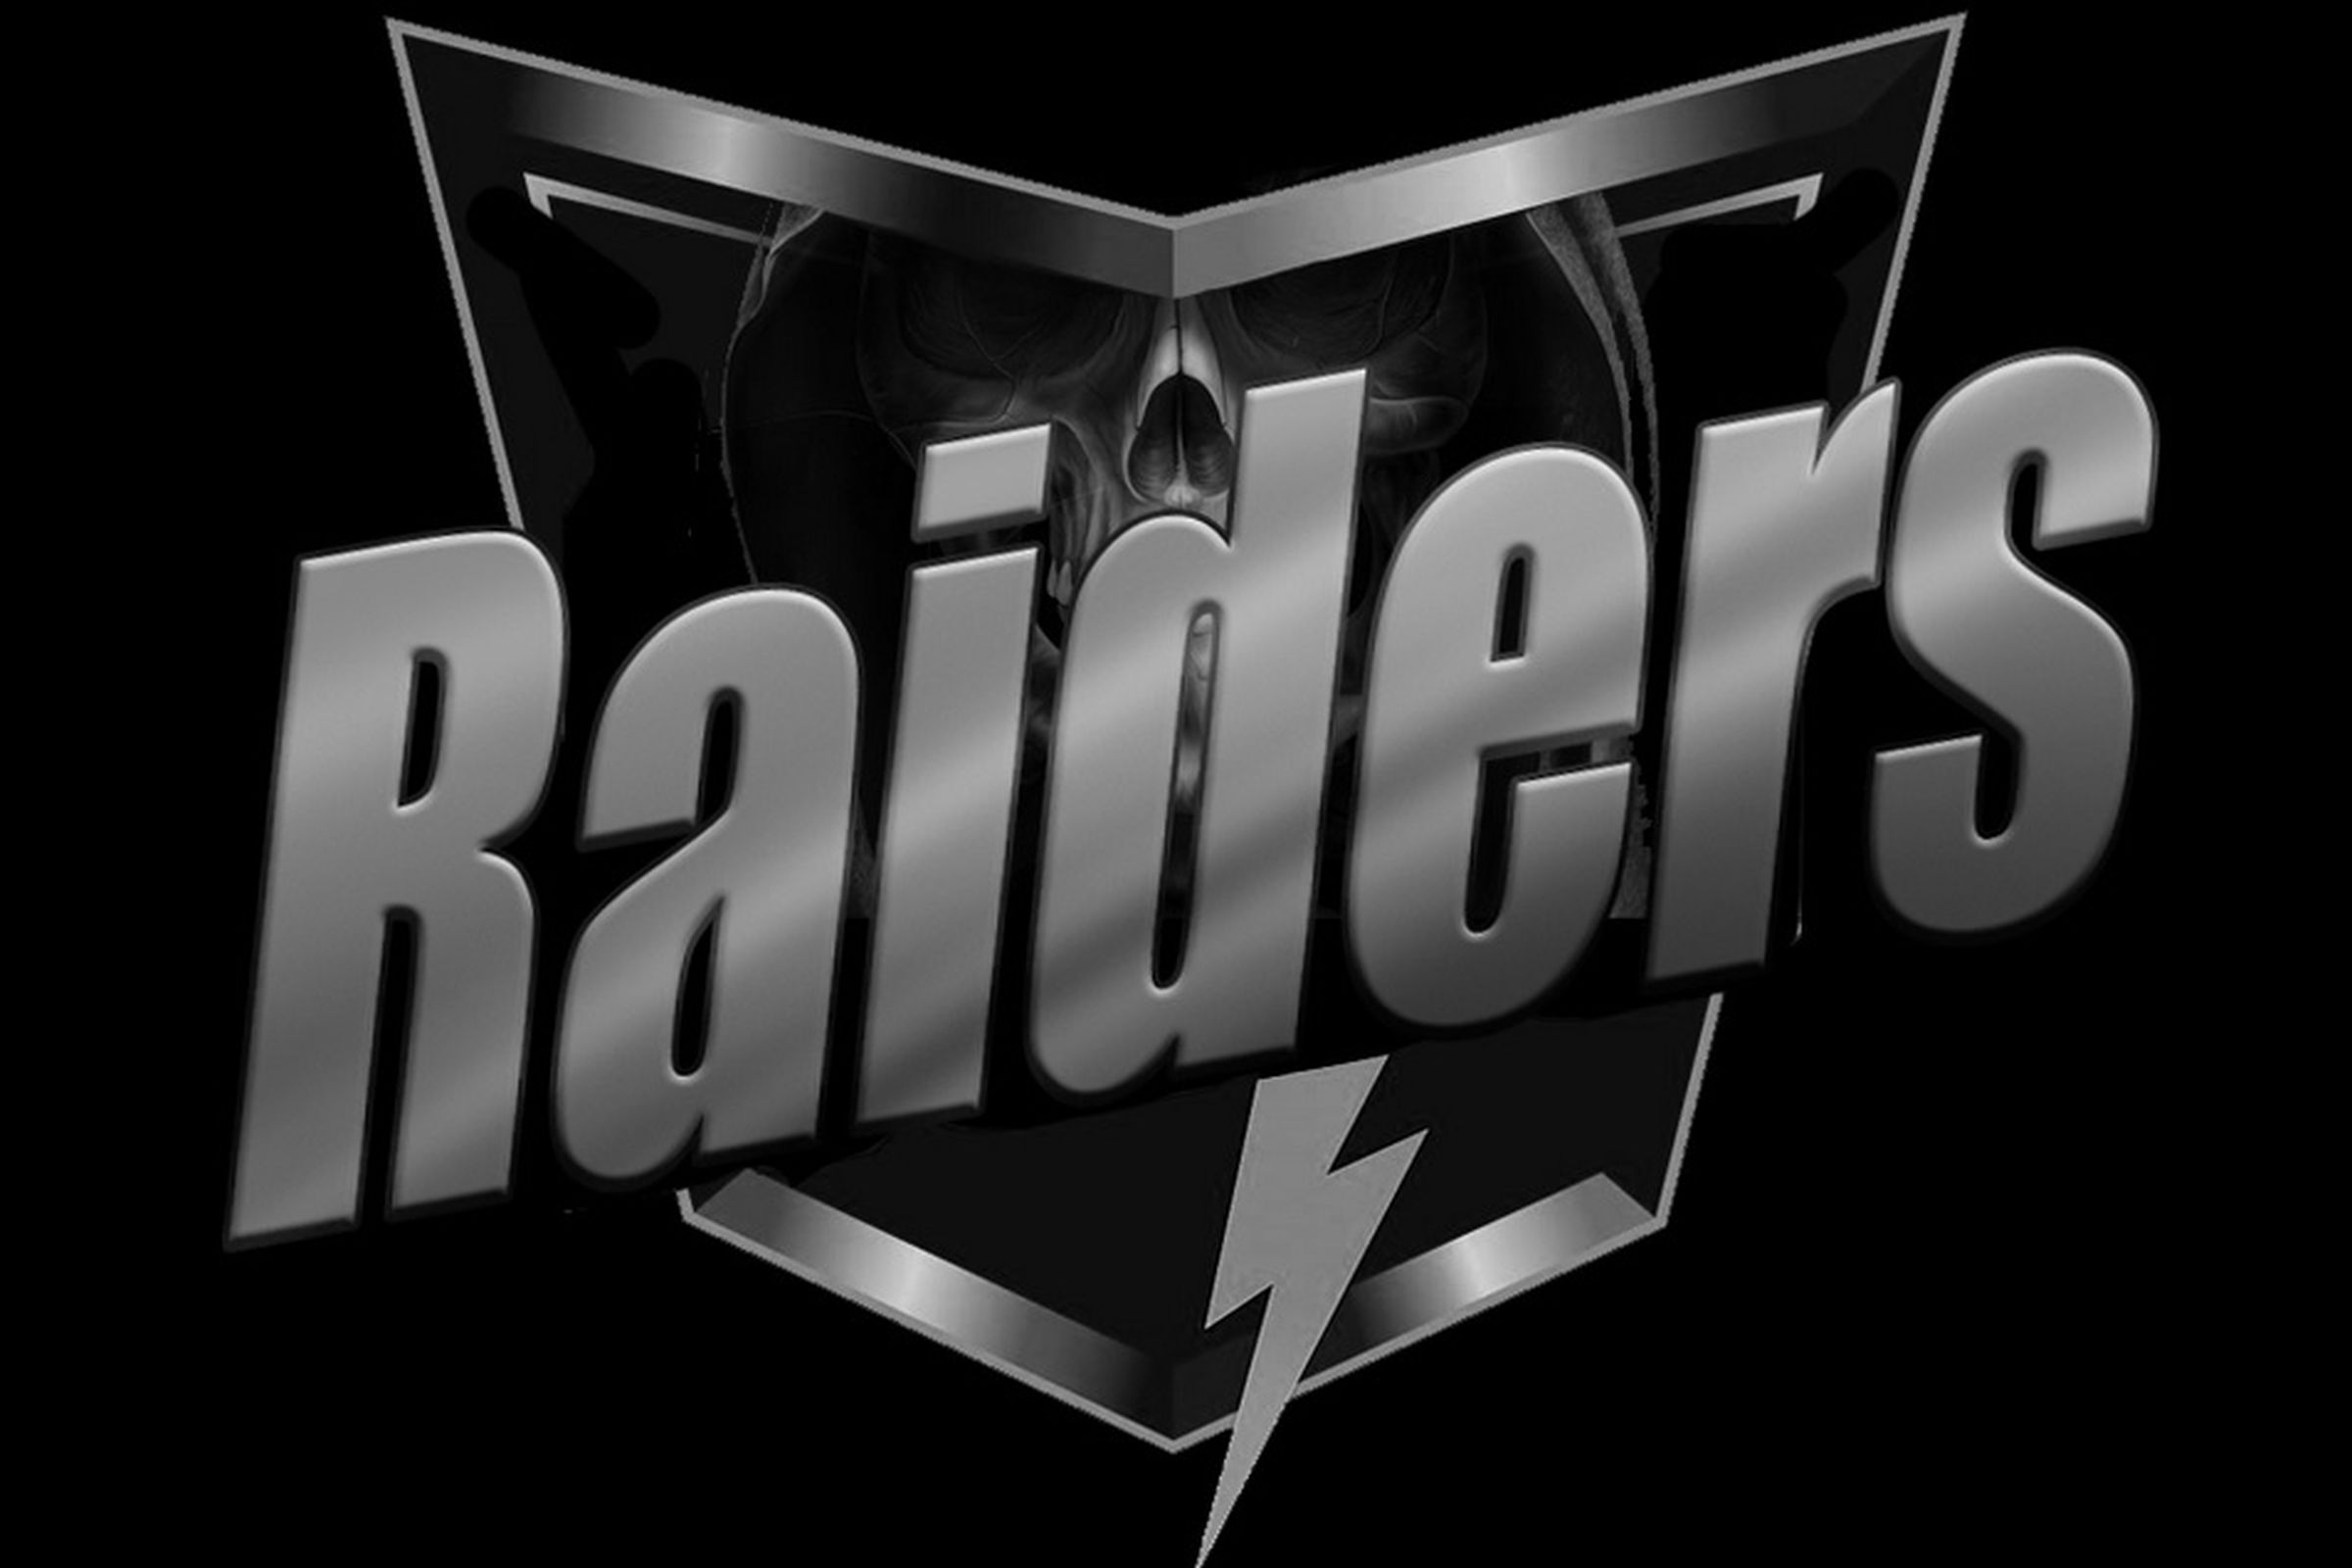 Raiders Logo Redesigned As A Corporate Company Silver